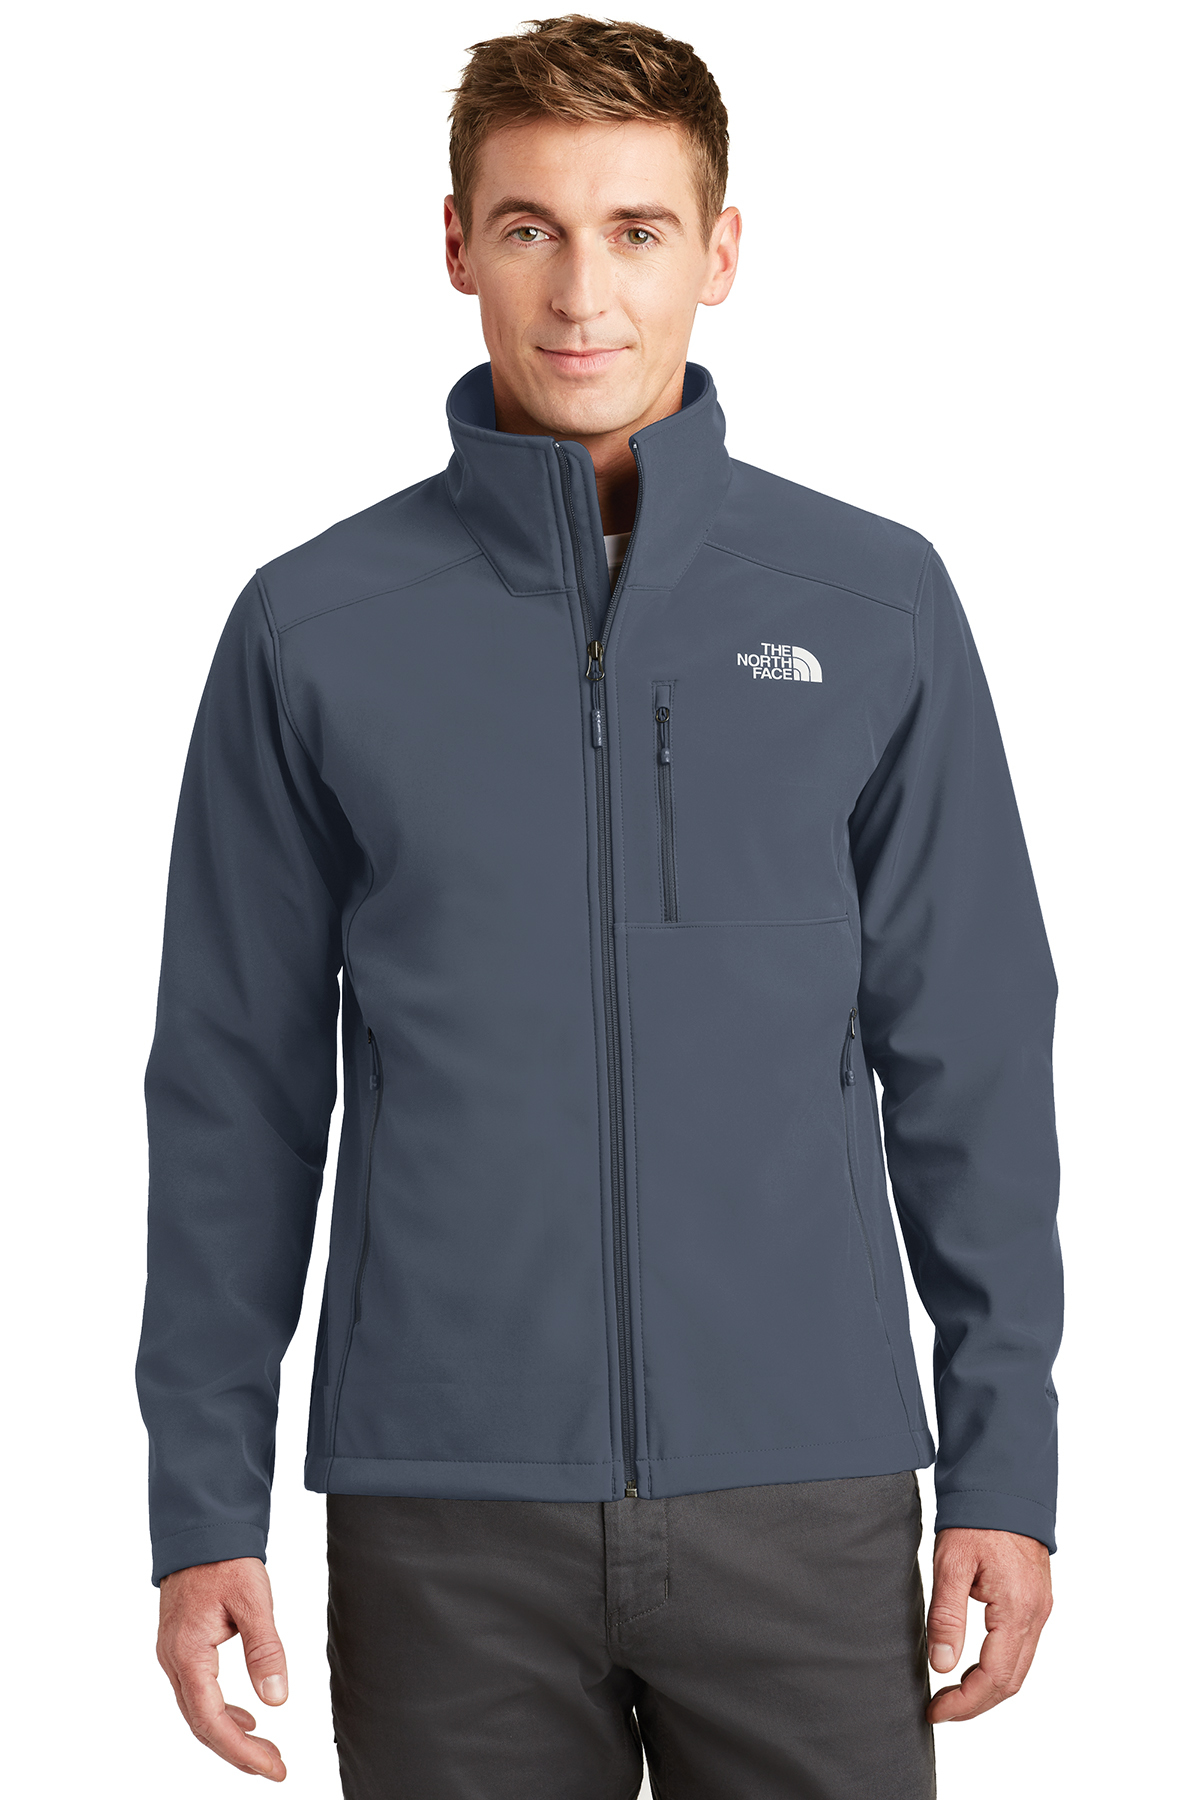 The North Face® Apex Barrier Soft Shell Jacket  7936bf31f2d5